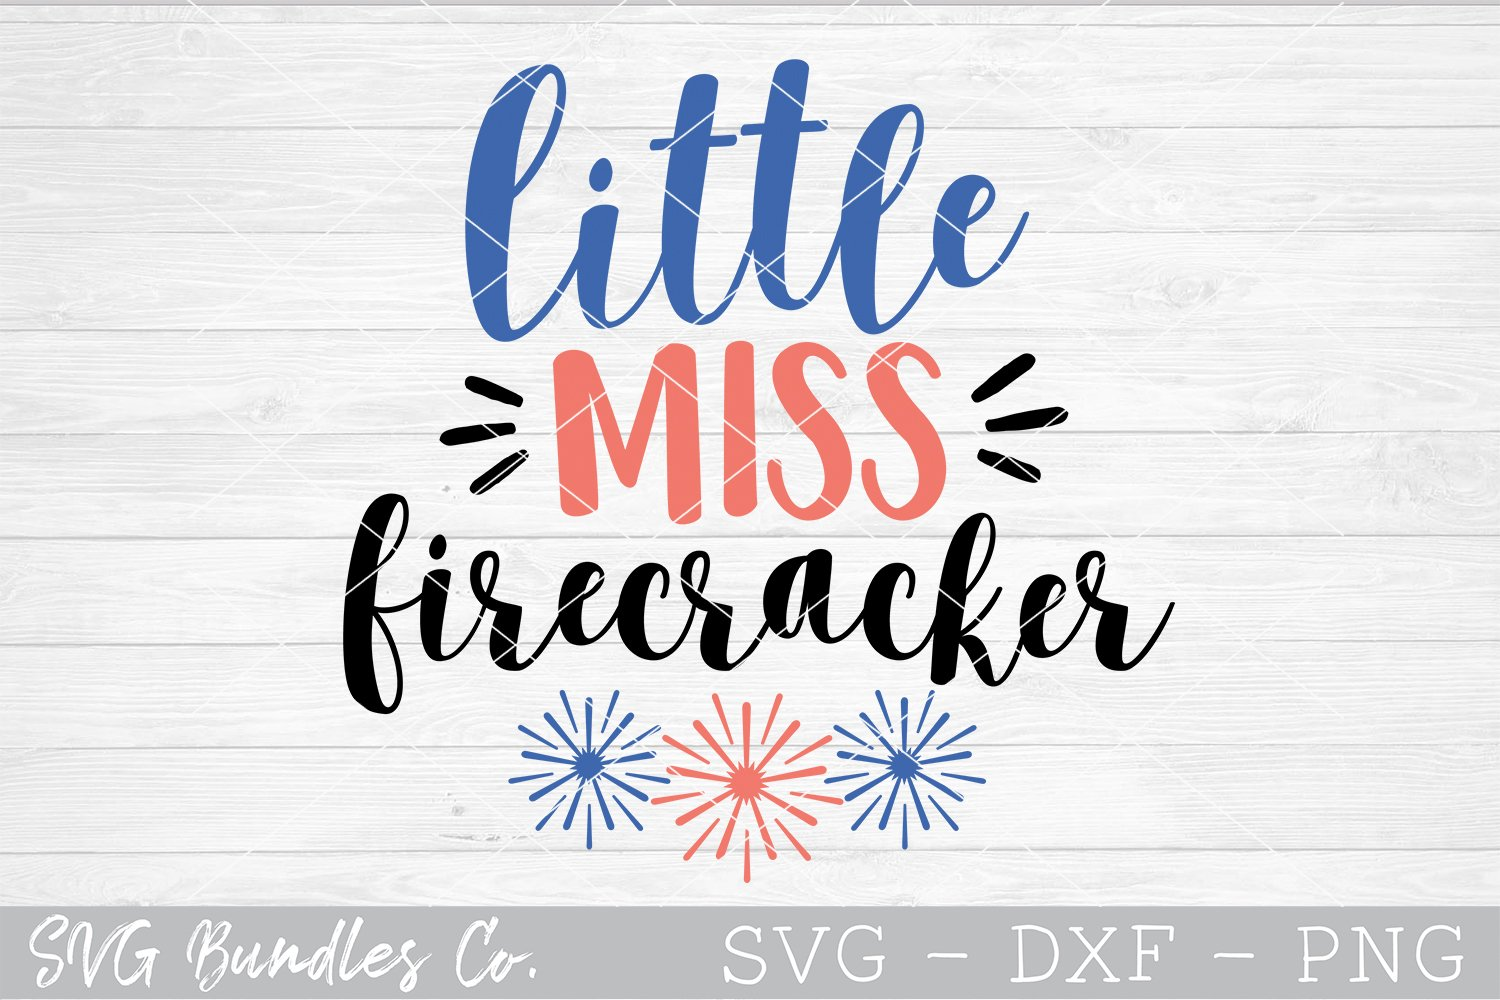 Little Miss Firecracker - 4th of July SVG DXF PNG example image 1